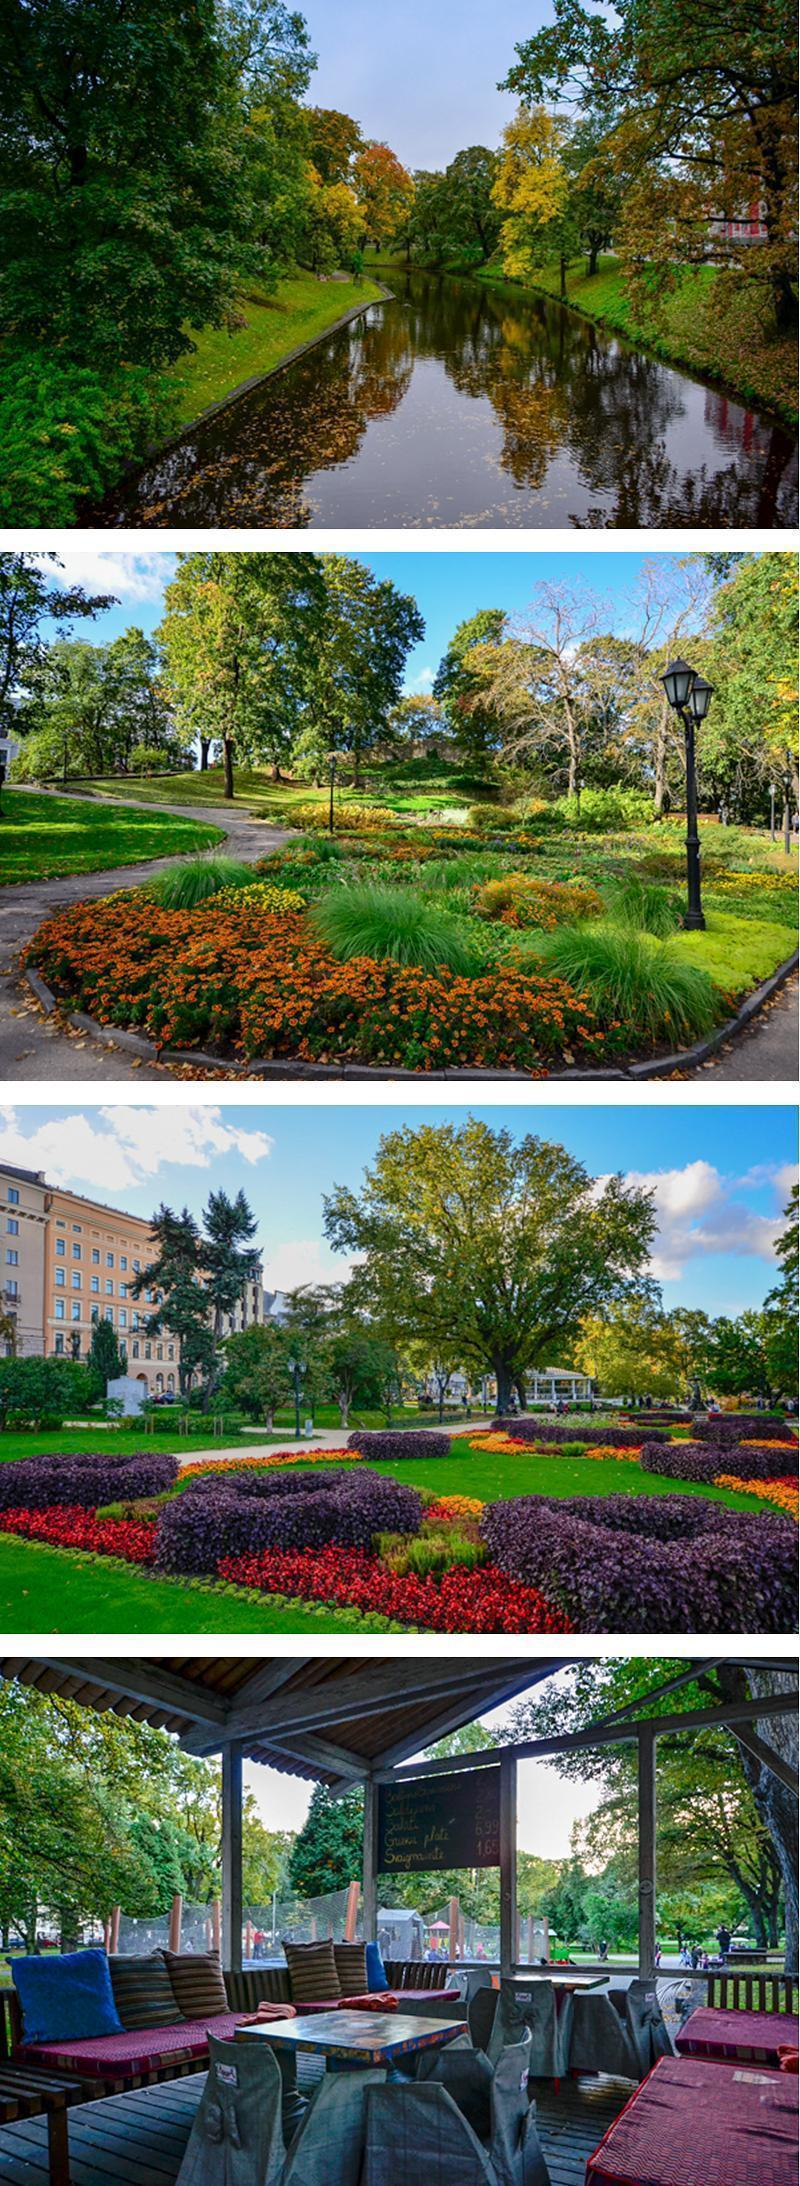 Riga's beautiful parks and the view from the Tea House